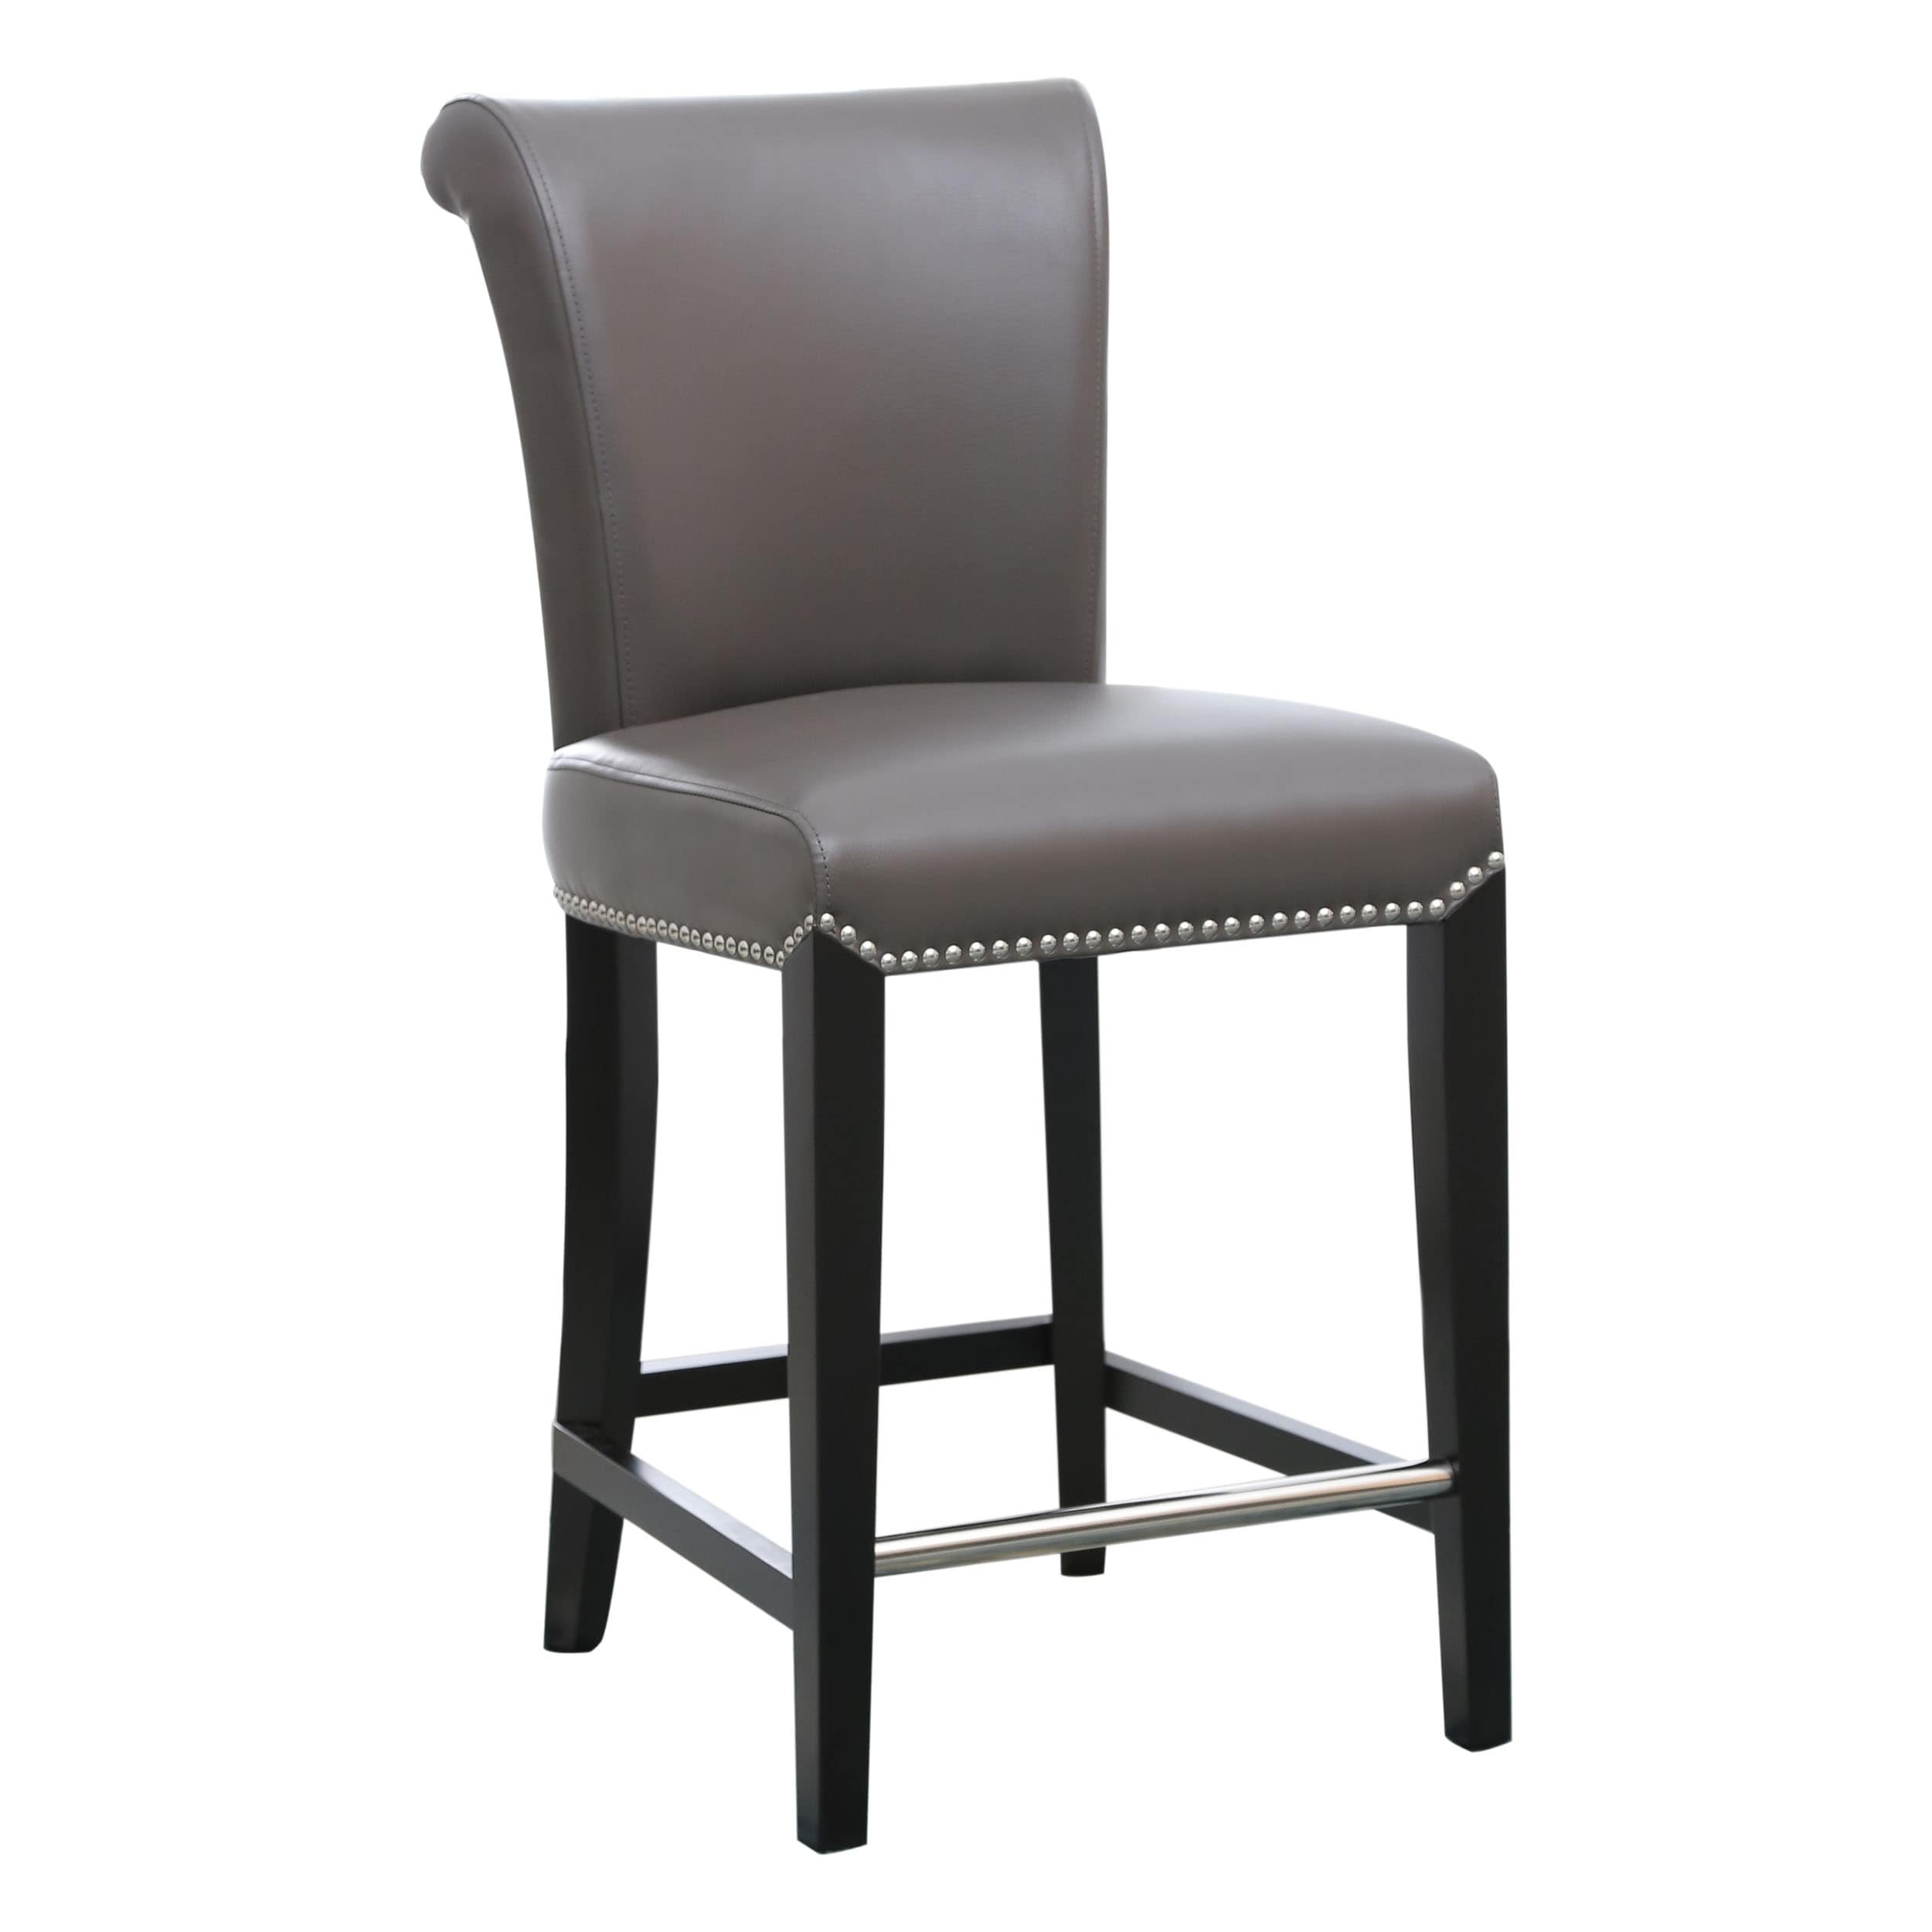 Strange Abbyson Century 25 Inch Grey Leather Counter Stool Ibusinesslaw Wood Chair Design Ideas Ibusinesslaworg